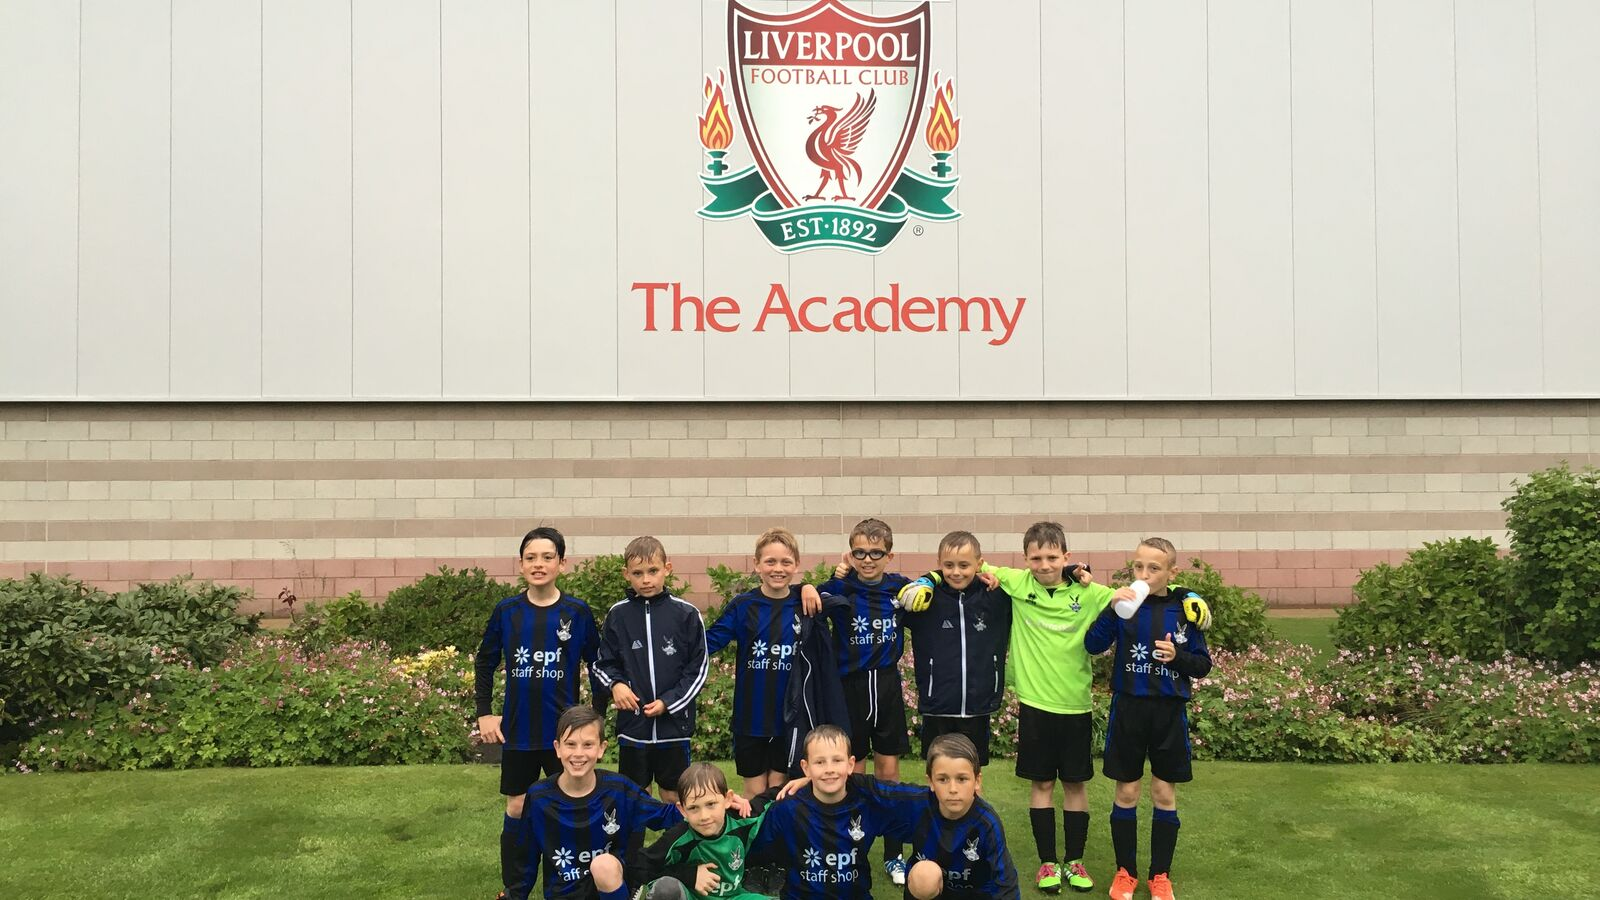 Ormskirk FC U9s Play against Liverpool FC at the LFC Academy